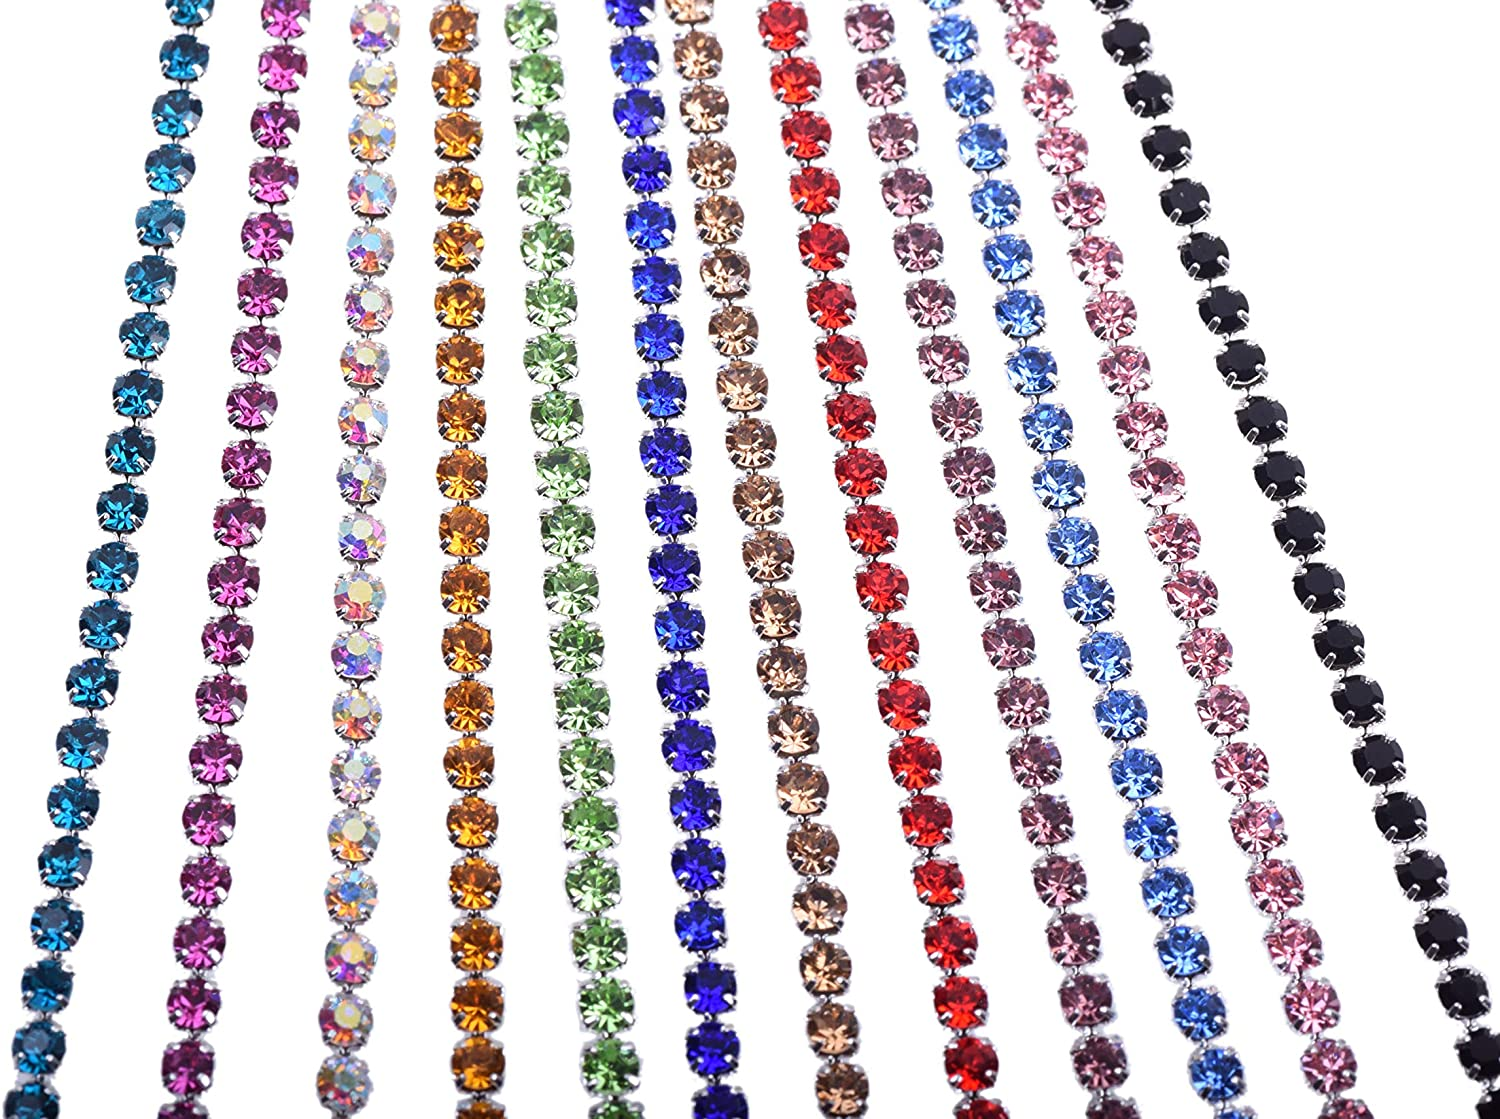 KAOYOO 12 Yards Crystal Rhinestone Chain Trim Mixed for DIY,Sewing,Crafts,Decoration(1 Yard for Each Color,SS12/3.0mm/0.12)